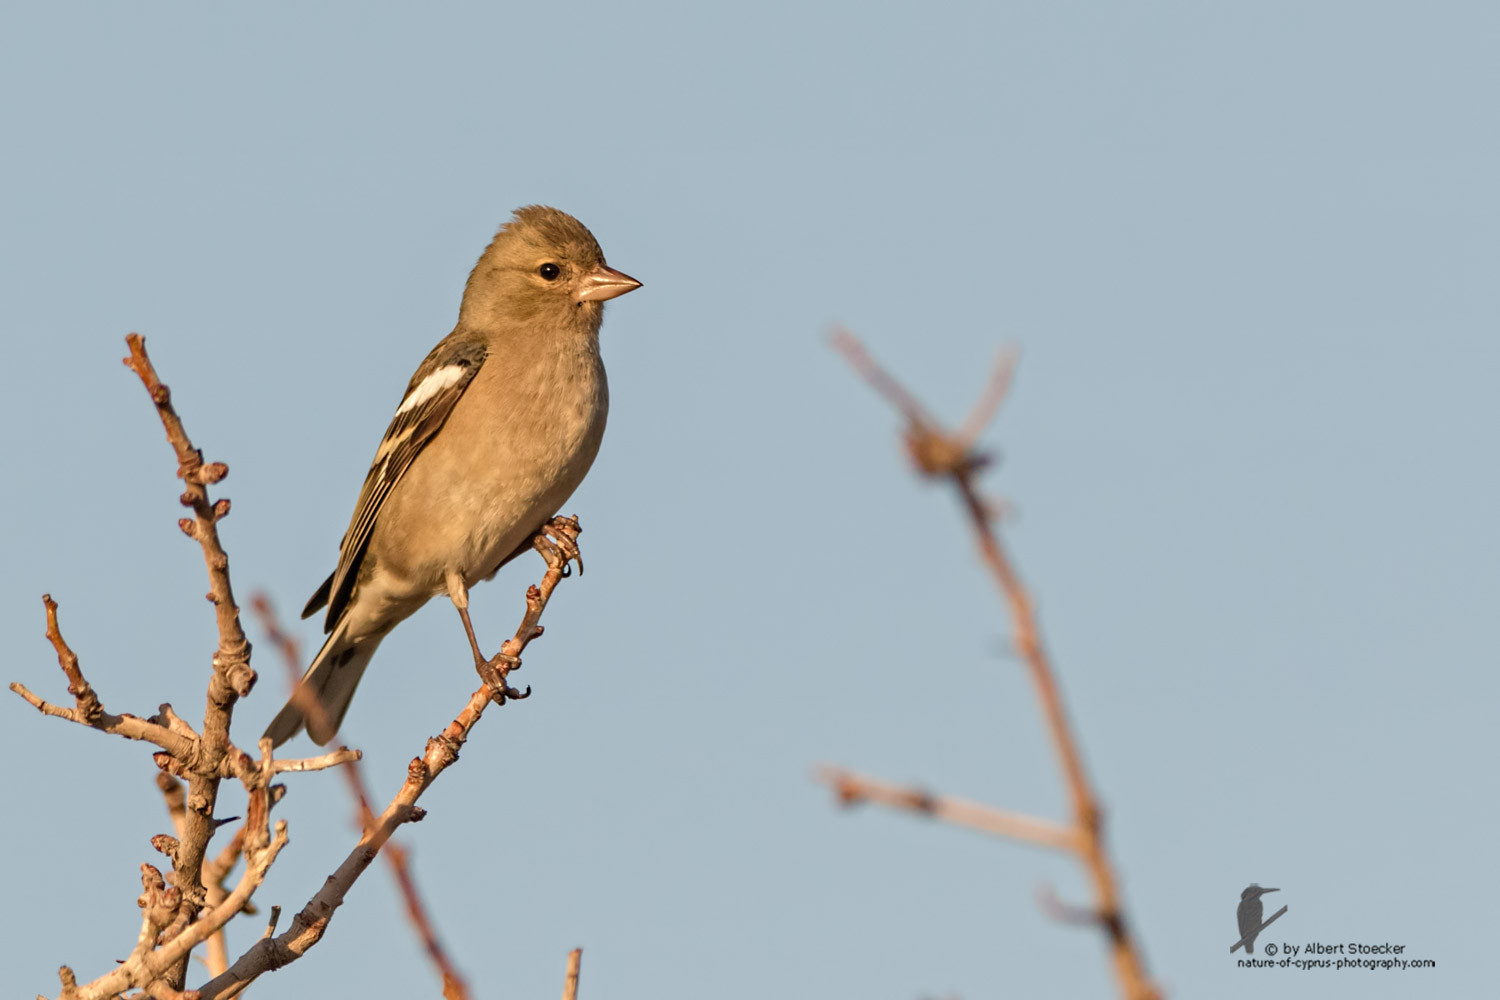 Fringilla coelebs - Common Chaffinch - Buchfink, Cyprus, Anarita Park, January 2016